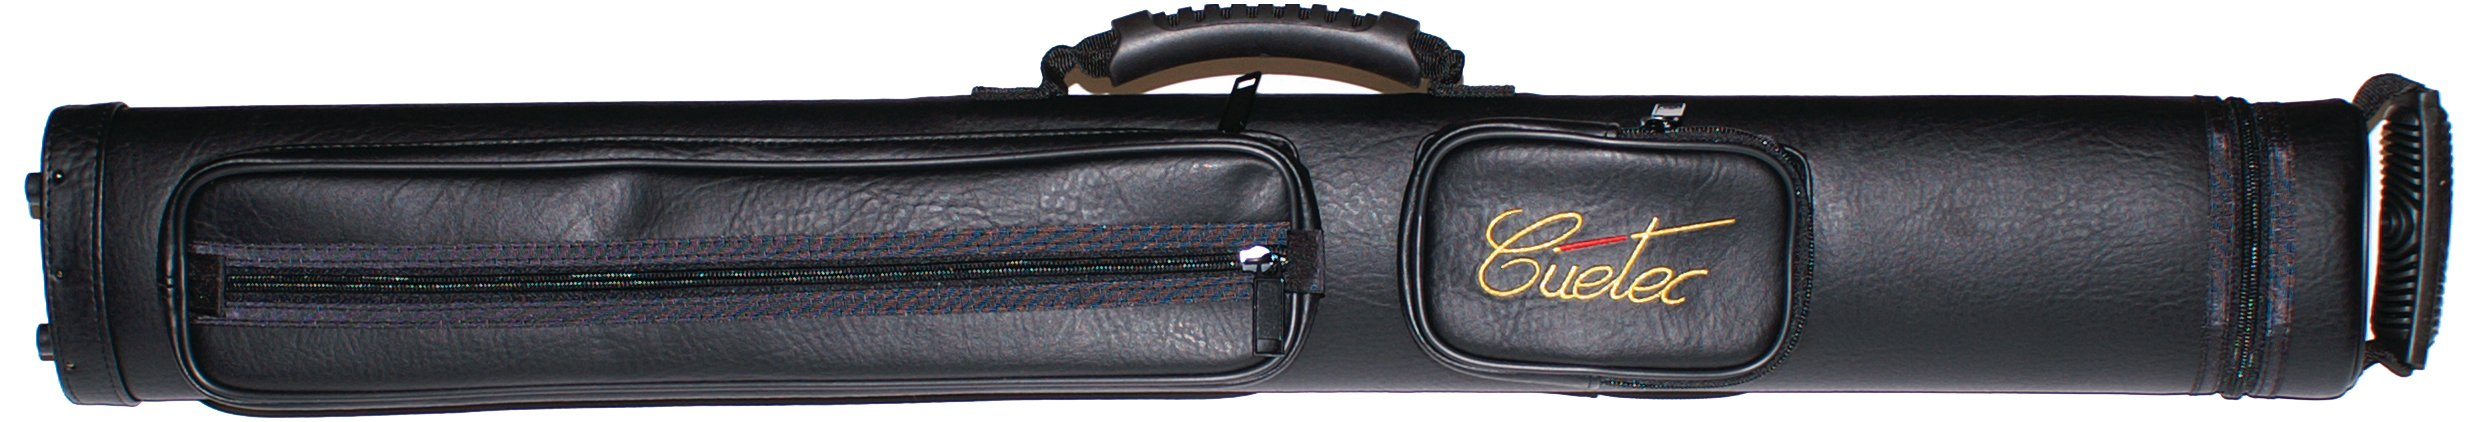 Cuetec Q-Safe Deluxe Billiard/Pool Cue Hard Carrying Case, Holds 2 Complete 2-Piece Cues (2 Butt/2 Shaft)